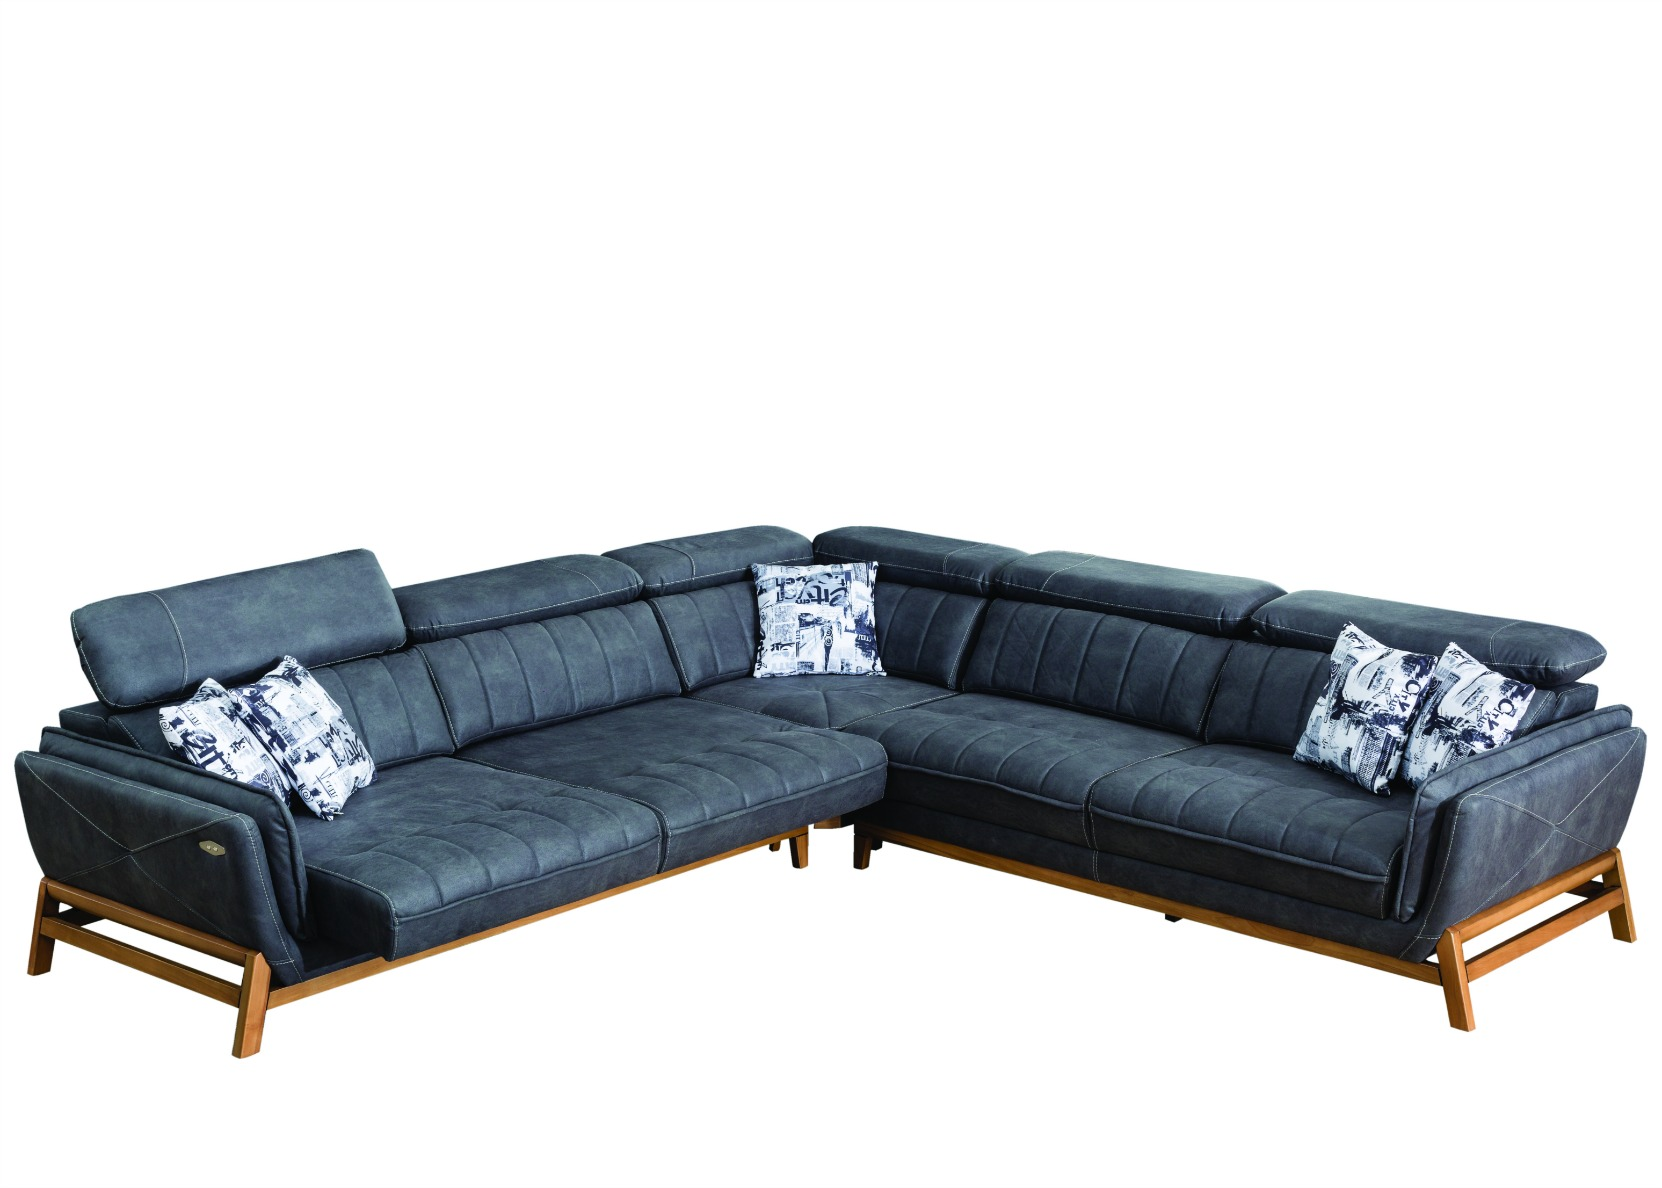 Lounge Sofa With Motorized Sliding Seat Not Just Brown